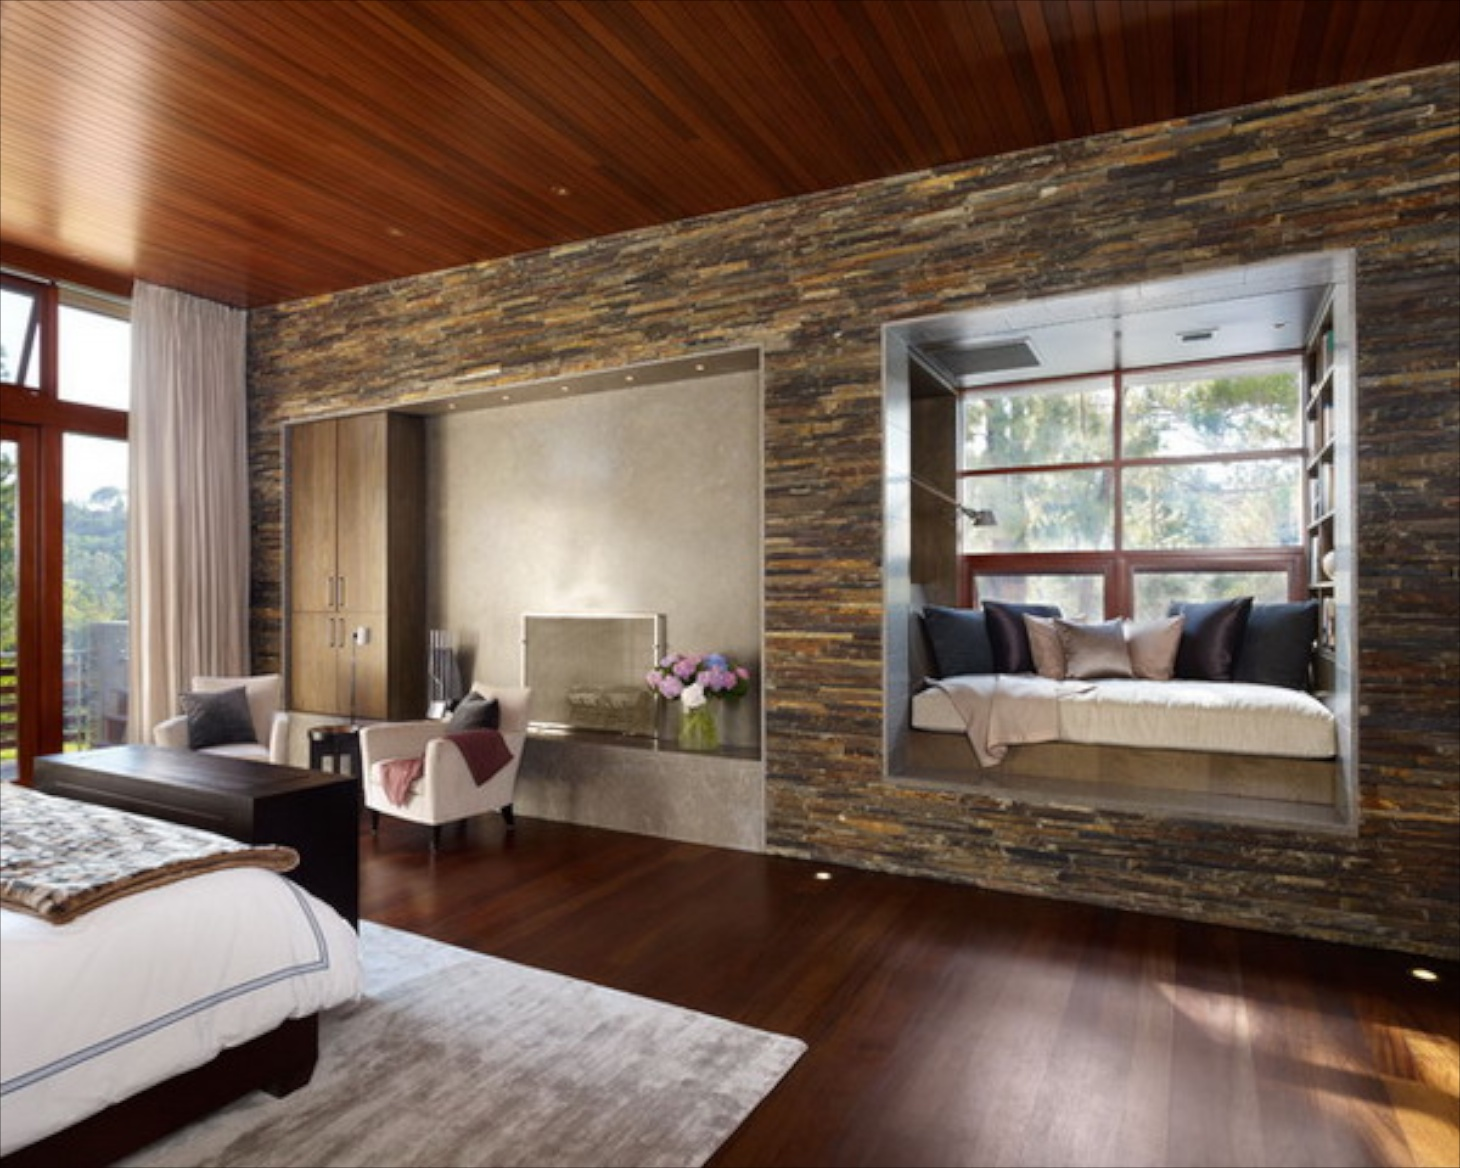 Creating Niches Is A Good Way To Incorporate Stone Into Modern Or Rustic Bedroom I Would Love Style The Niche For TV Area With Lights Above